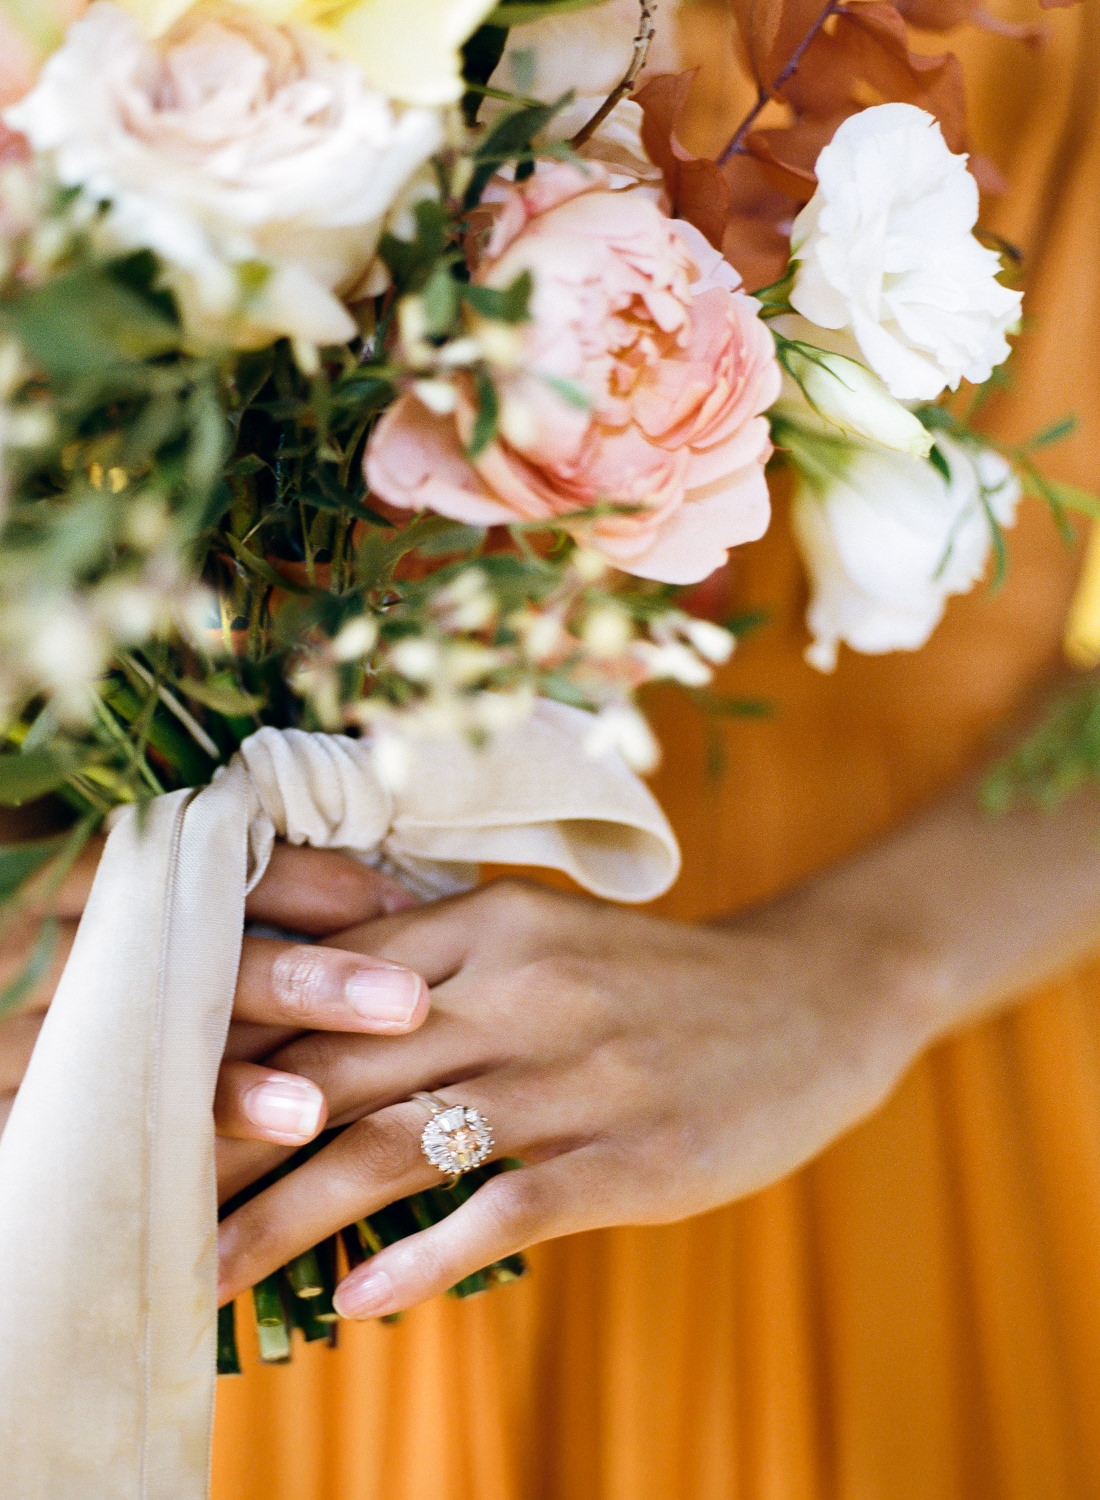 Vintage engagement ring and bridal bouquet; St. Louis Wedding Photographer Erica Robnett Photography